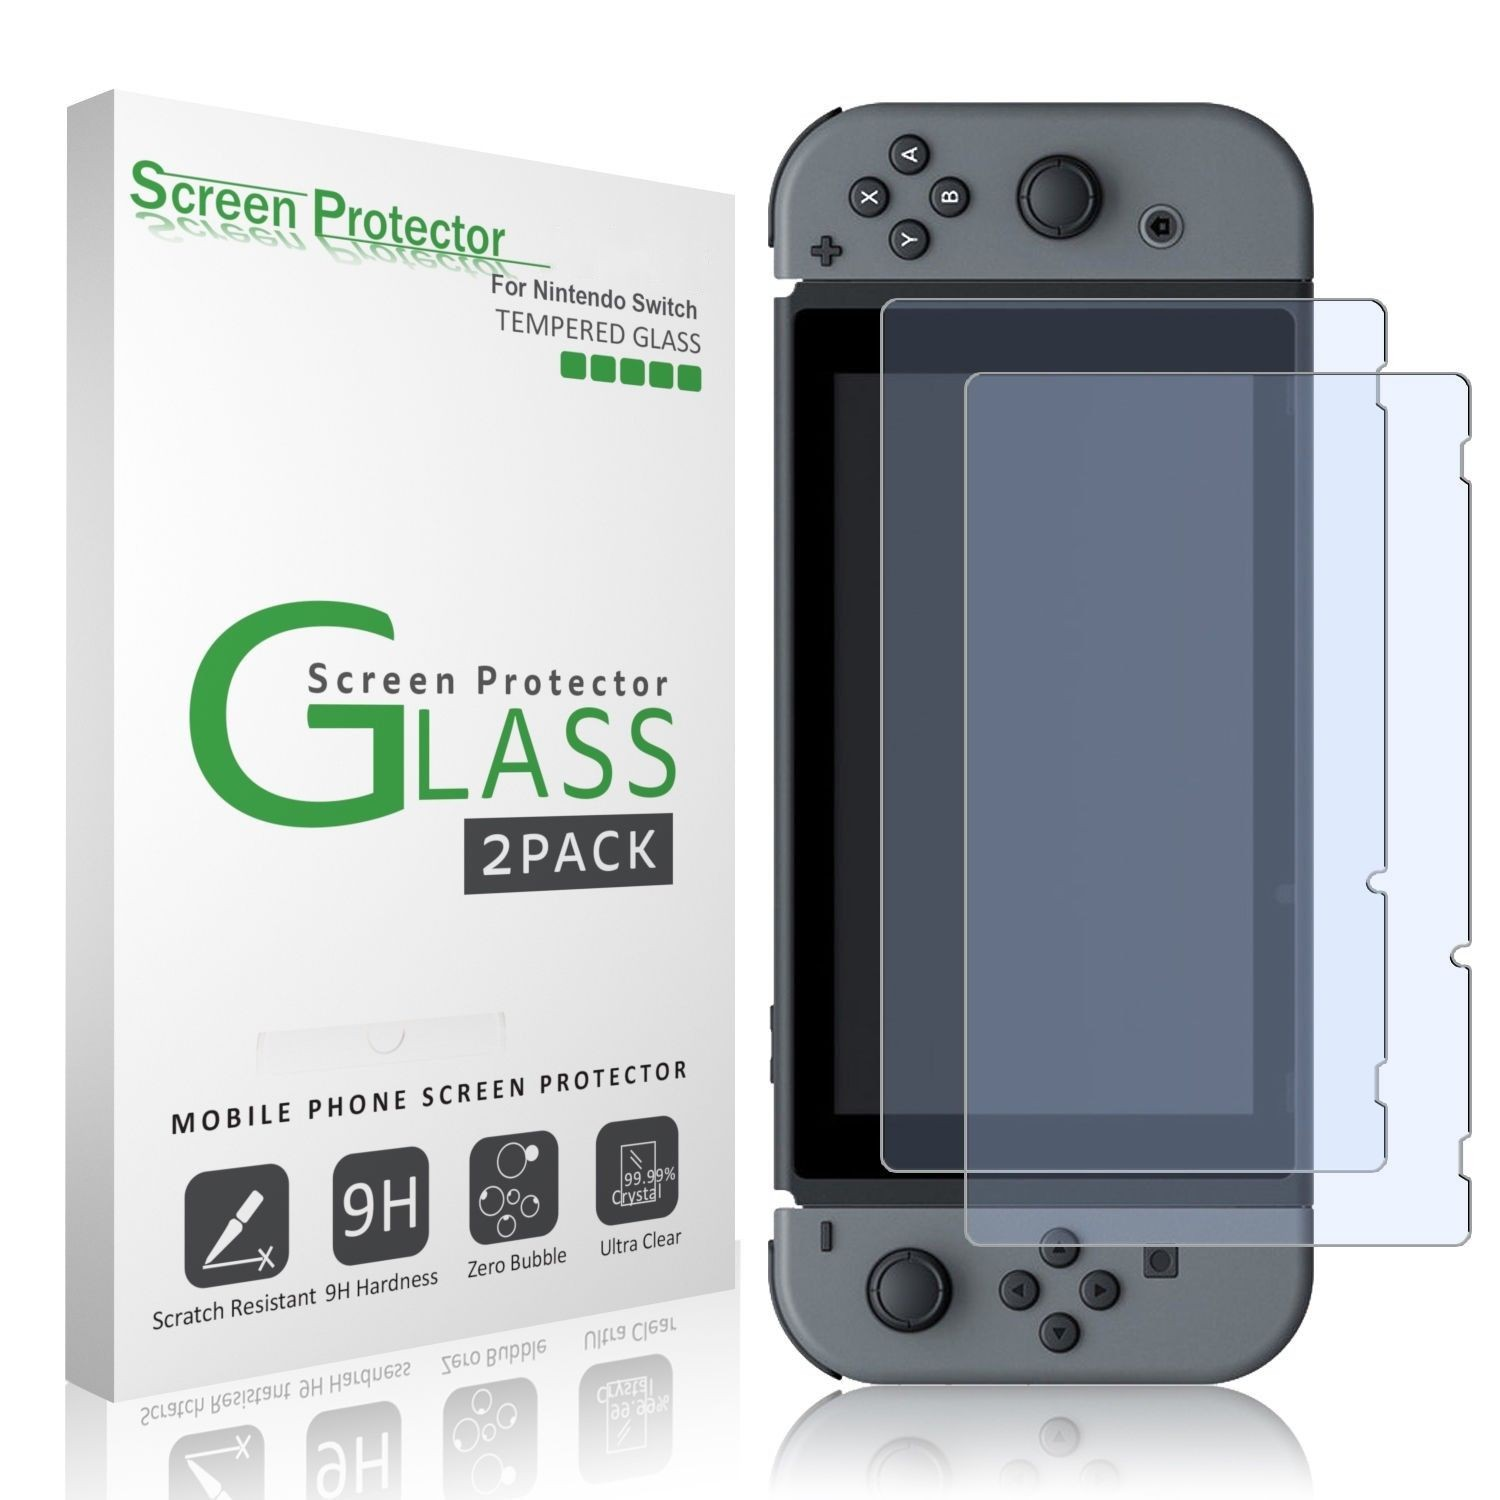 Nintendo Switch amFilm Premium Tempered Glass Screen Protector (2 Pack)